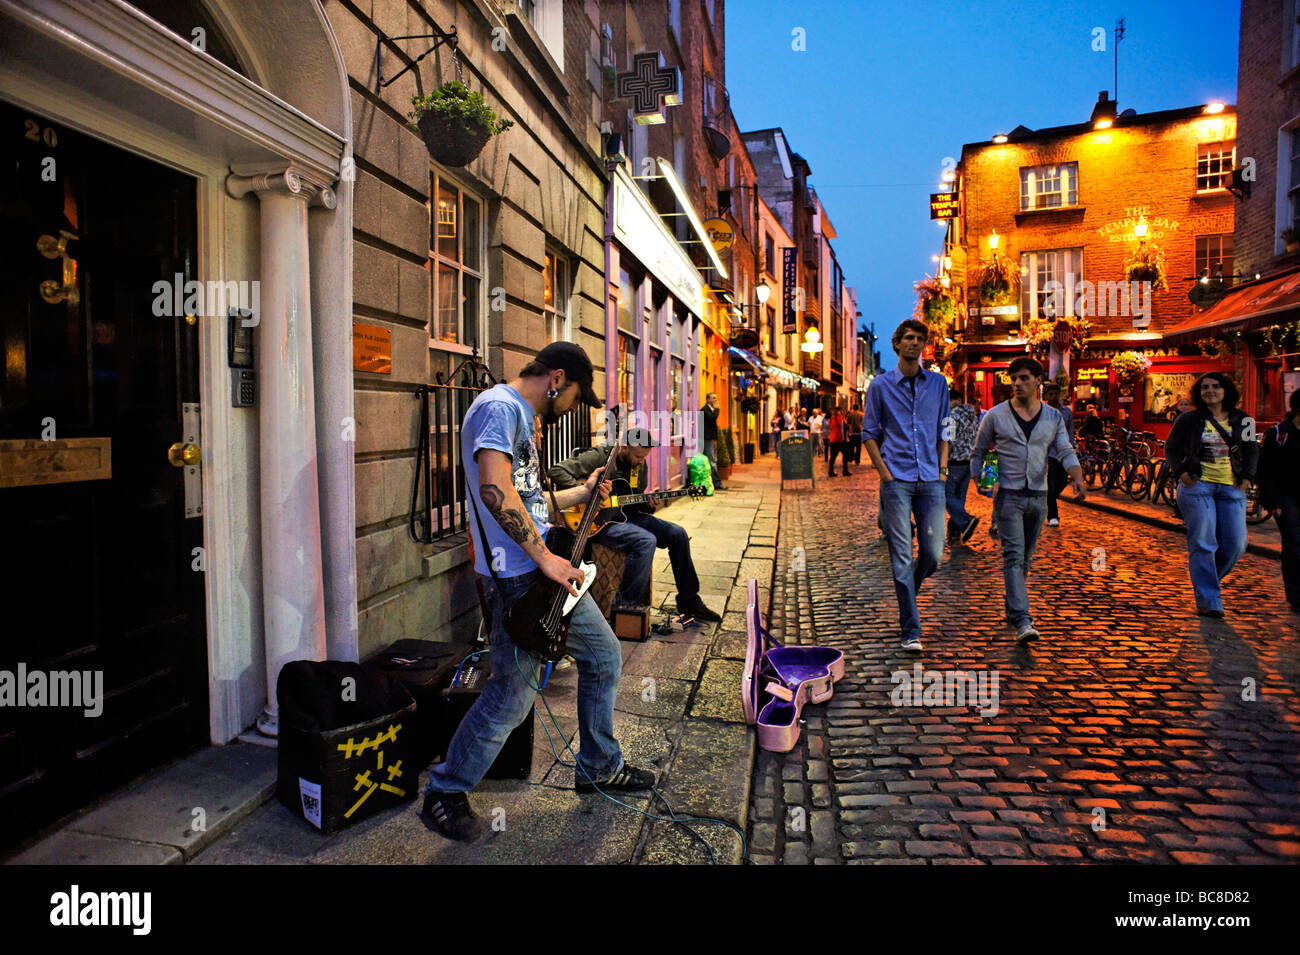 Band busking in cobbled street of Temple Bar nightlife area Dublin Republic of Ireland - Stock Image